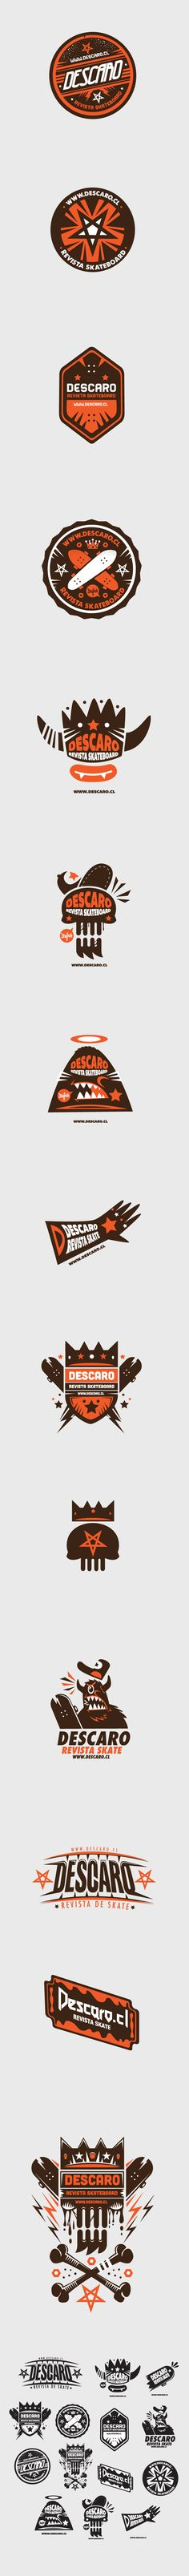 Logo collection Descaro skate Magazine by New Fren, via Behance